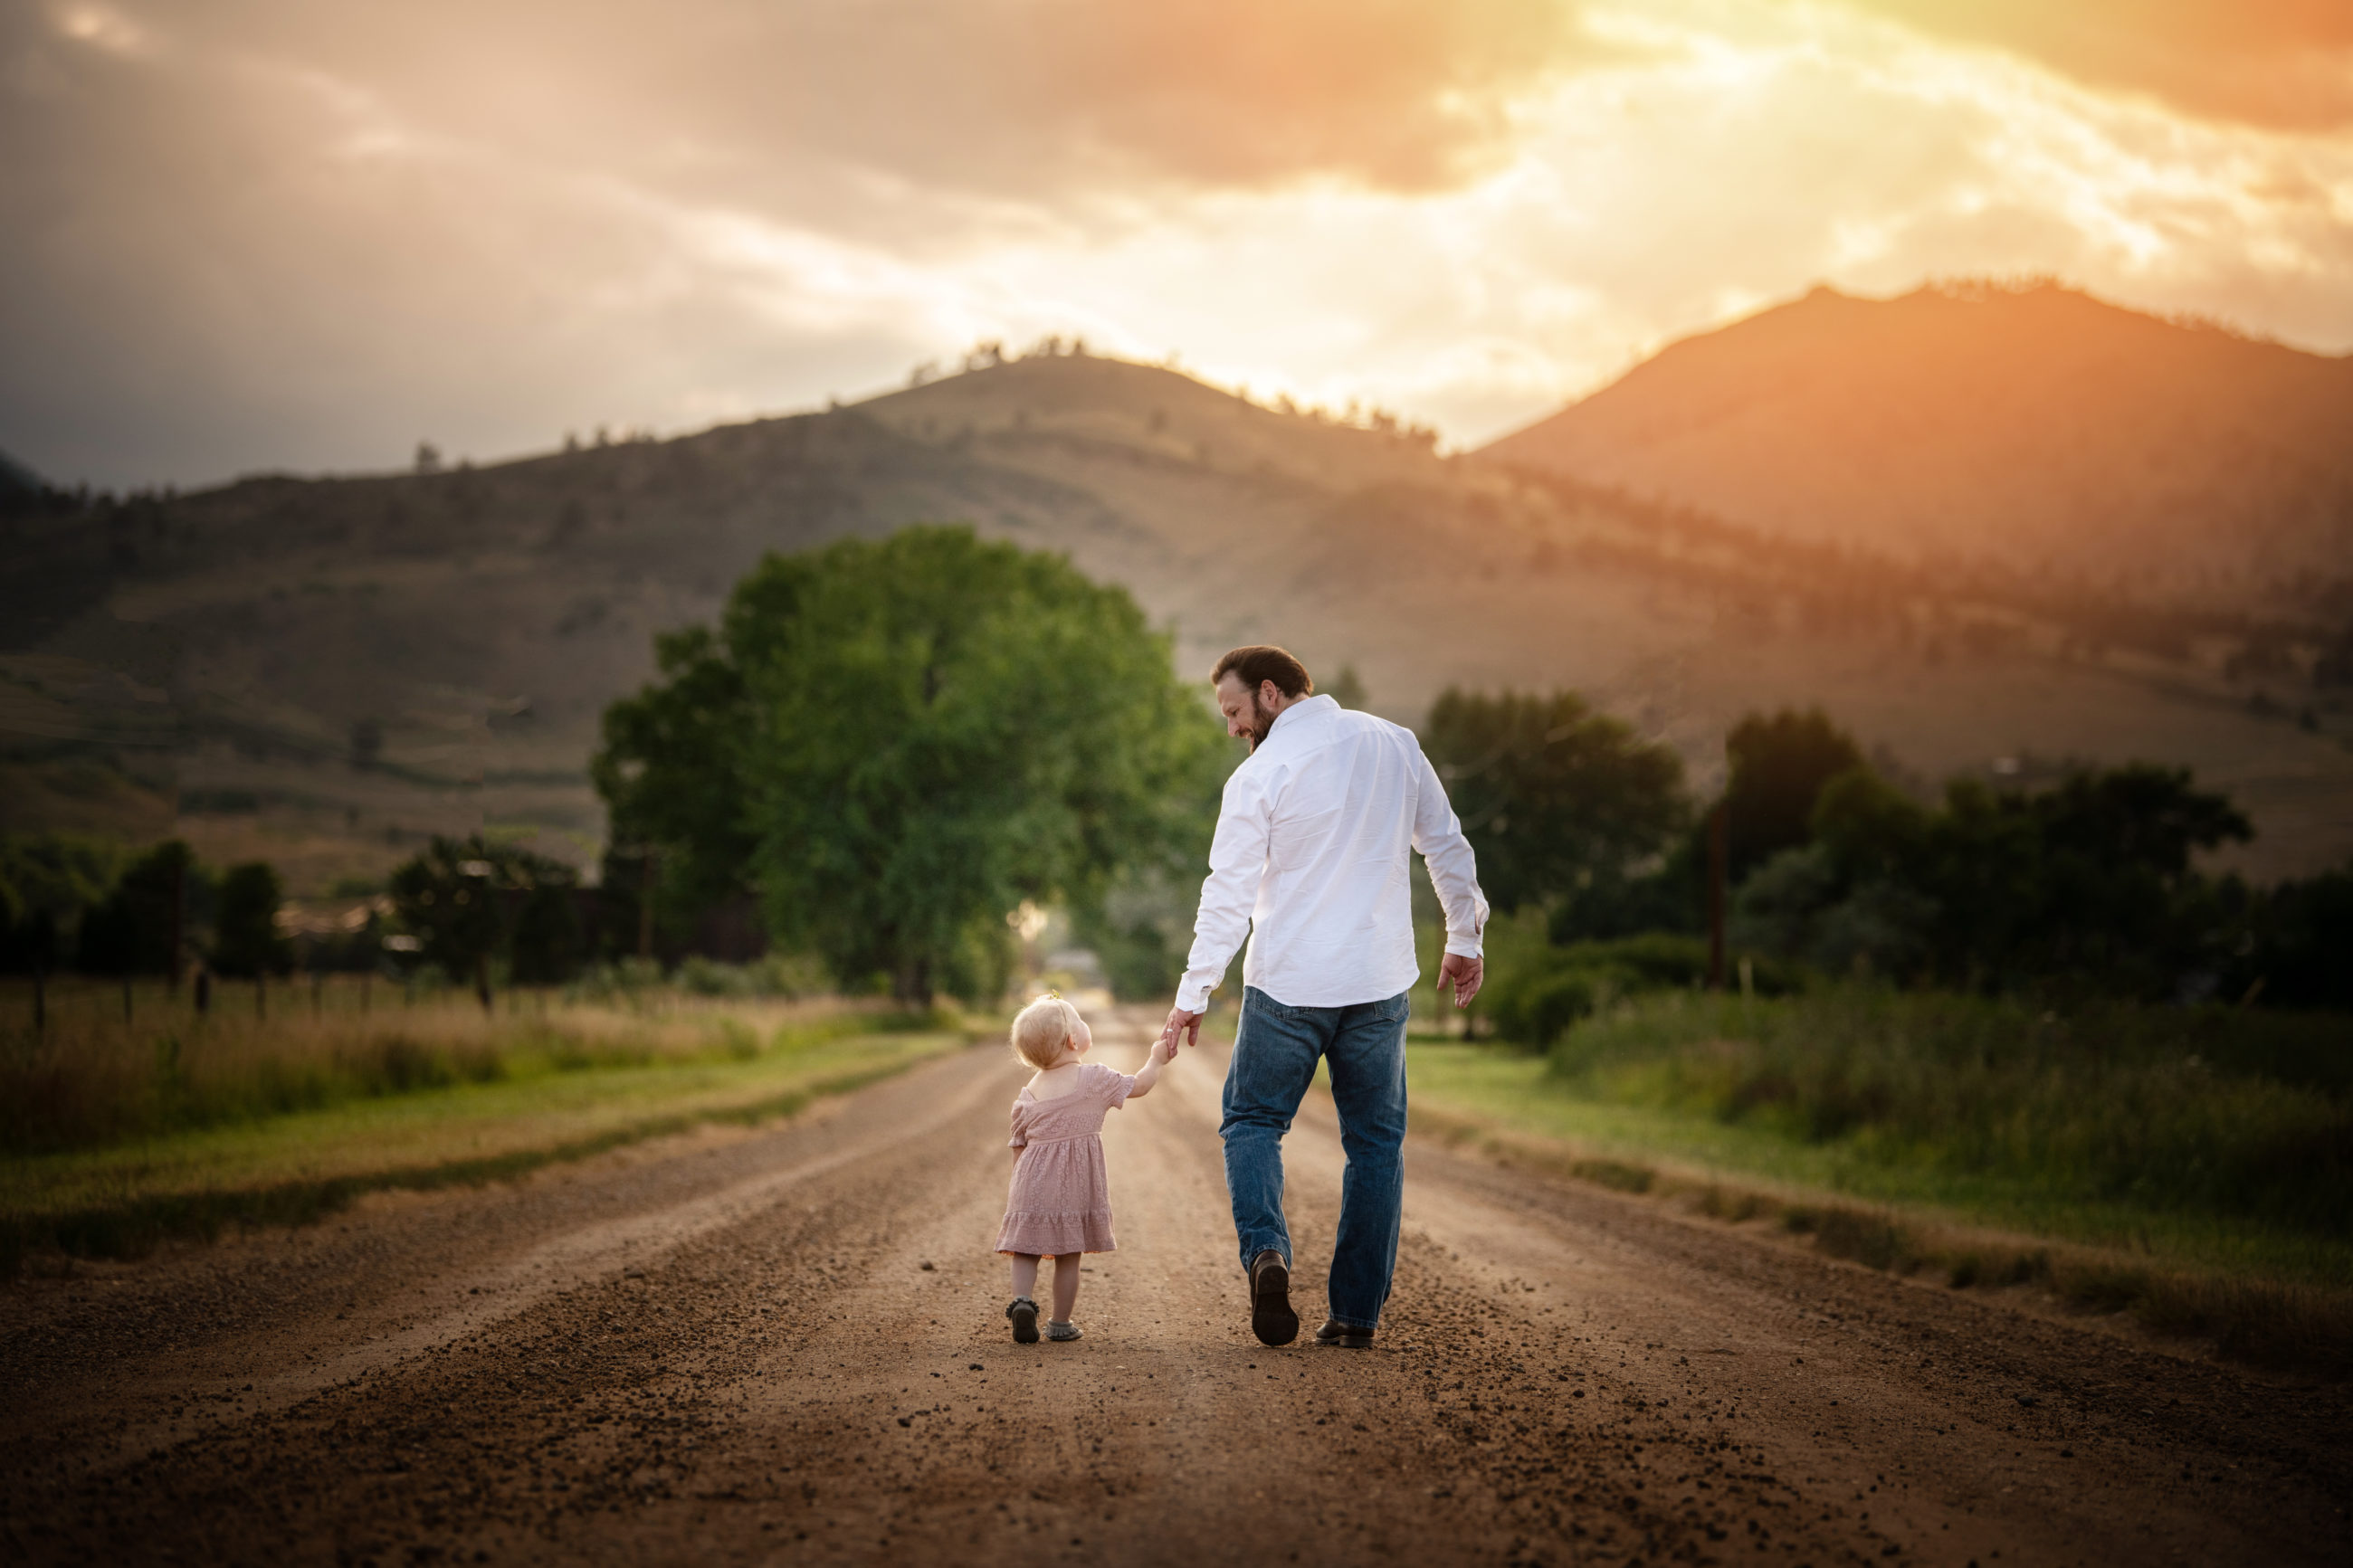 Mother daughter photo session | boulder family photographer baby girl walking down road with her dad at sunset